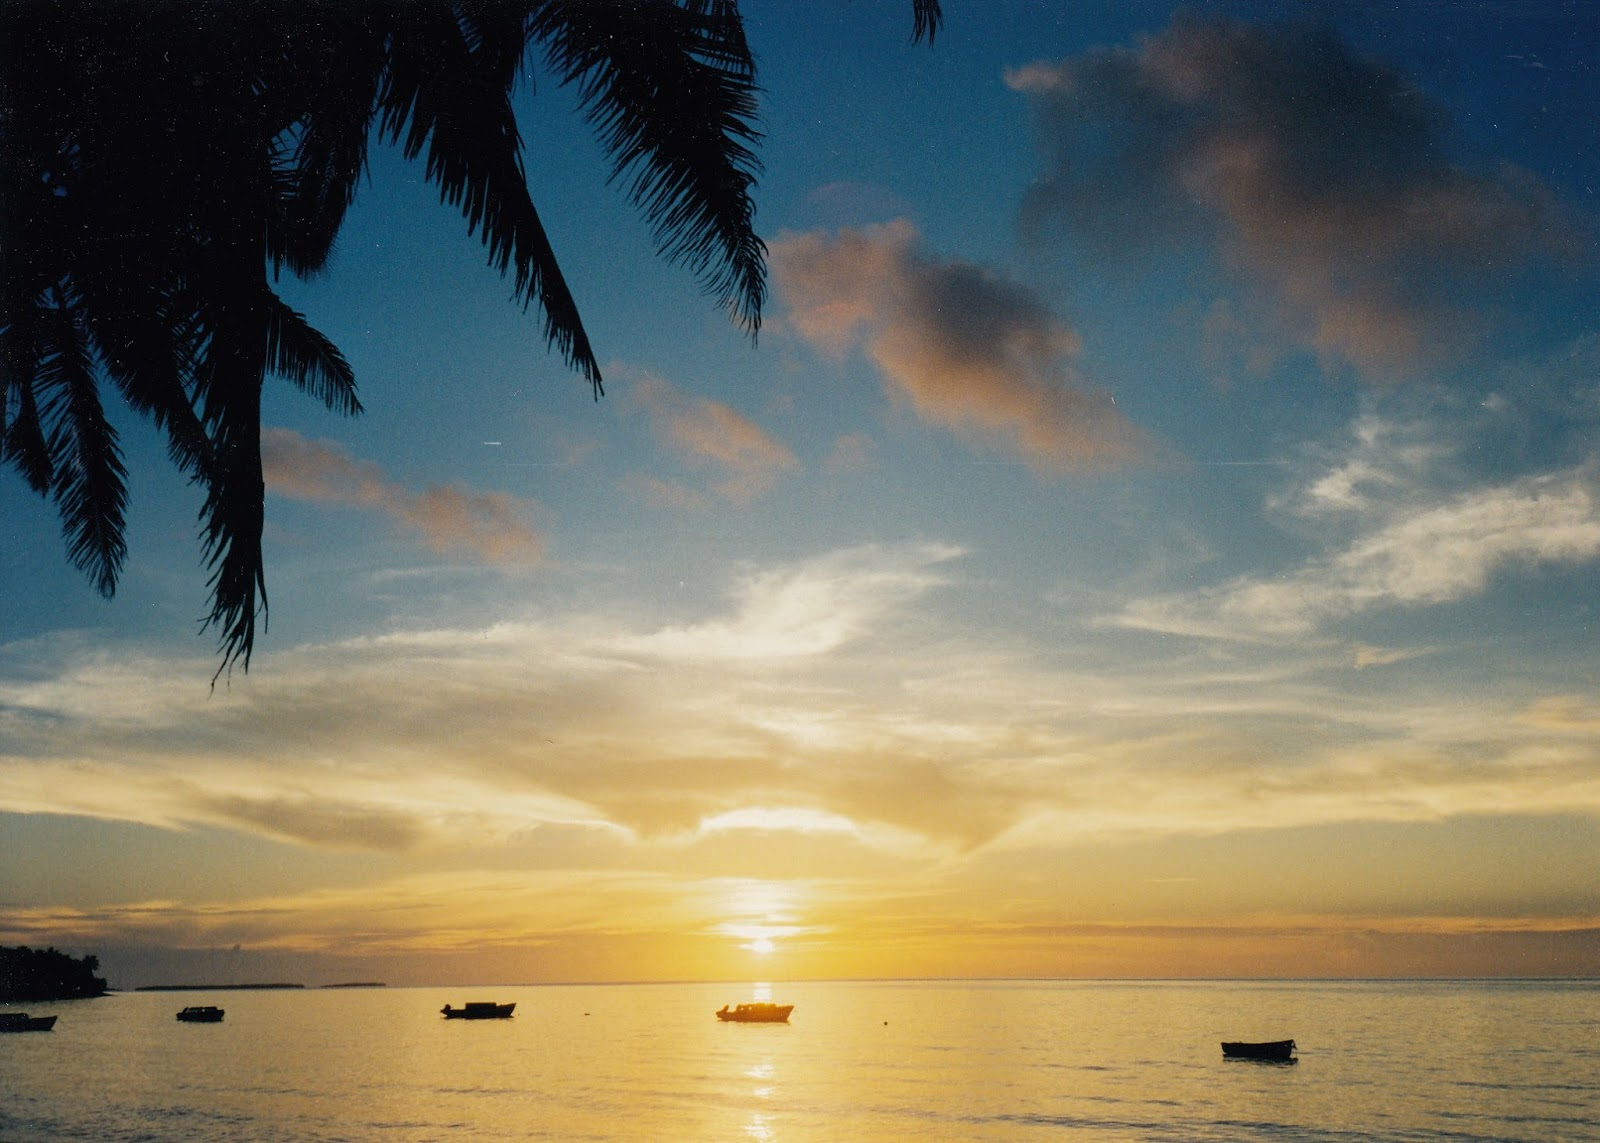 Tonga travel brings a beautiful sunset